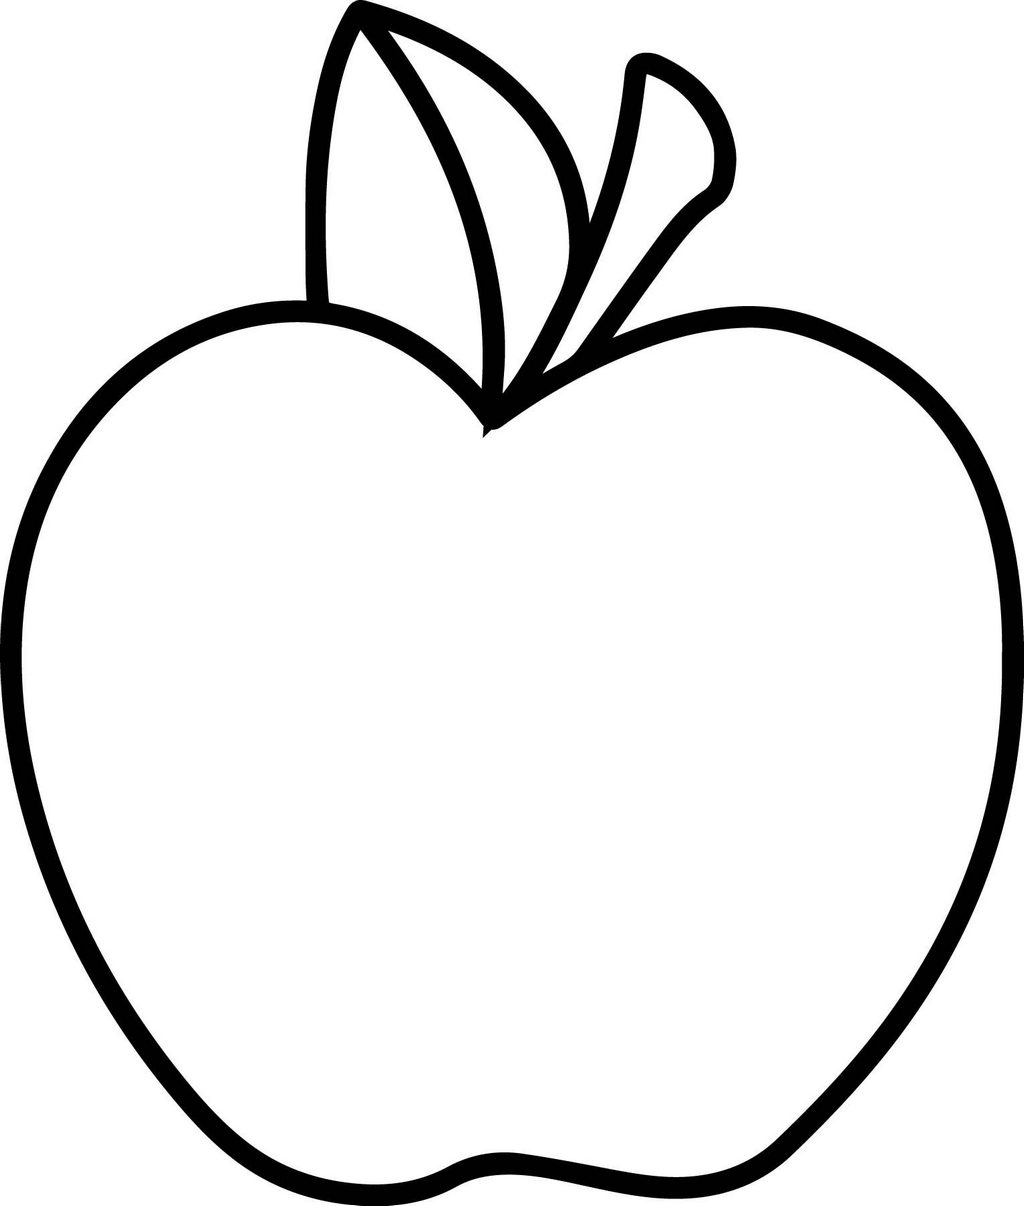 coloring apple apple coloring pages the sun flower pages coloring apple